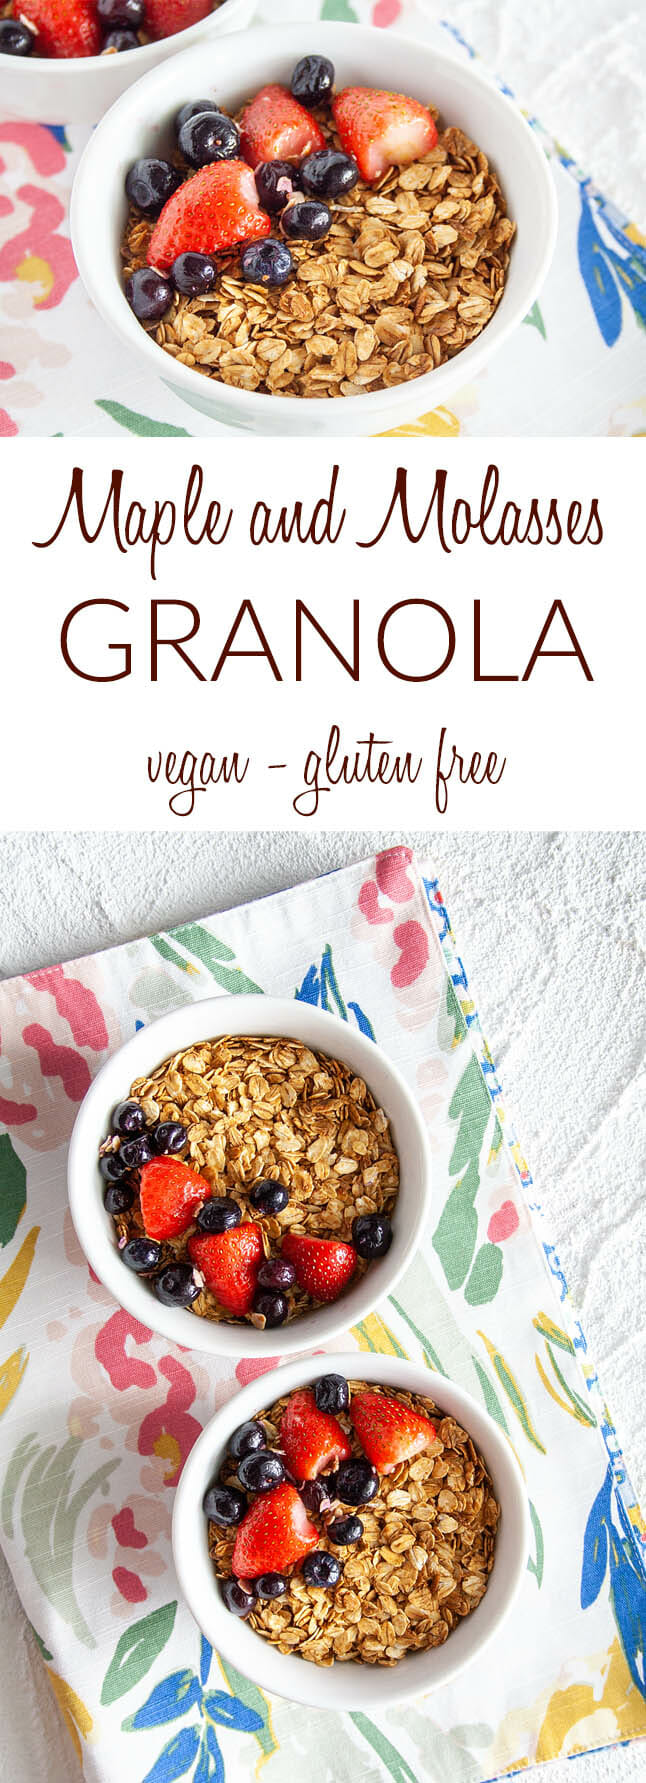 Maple and Molasses Granola collage photo with text.